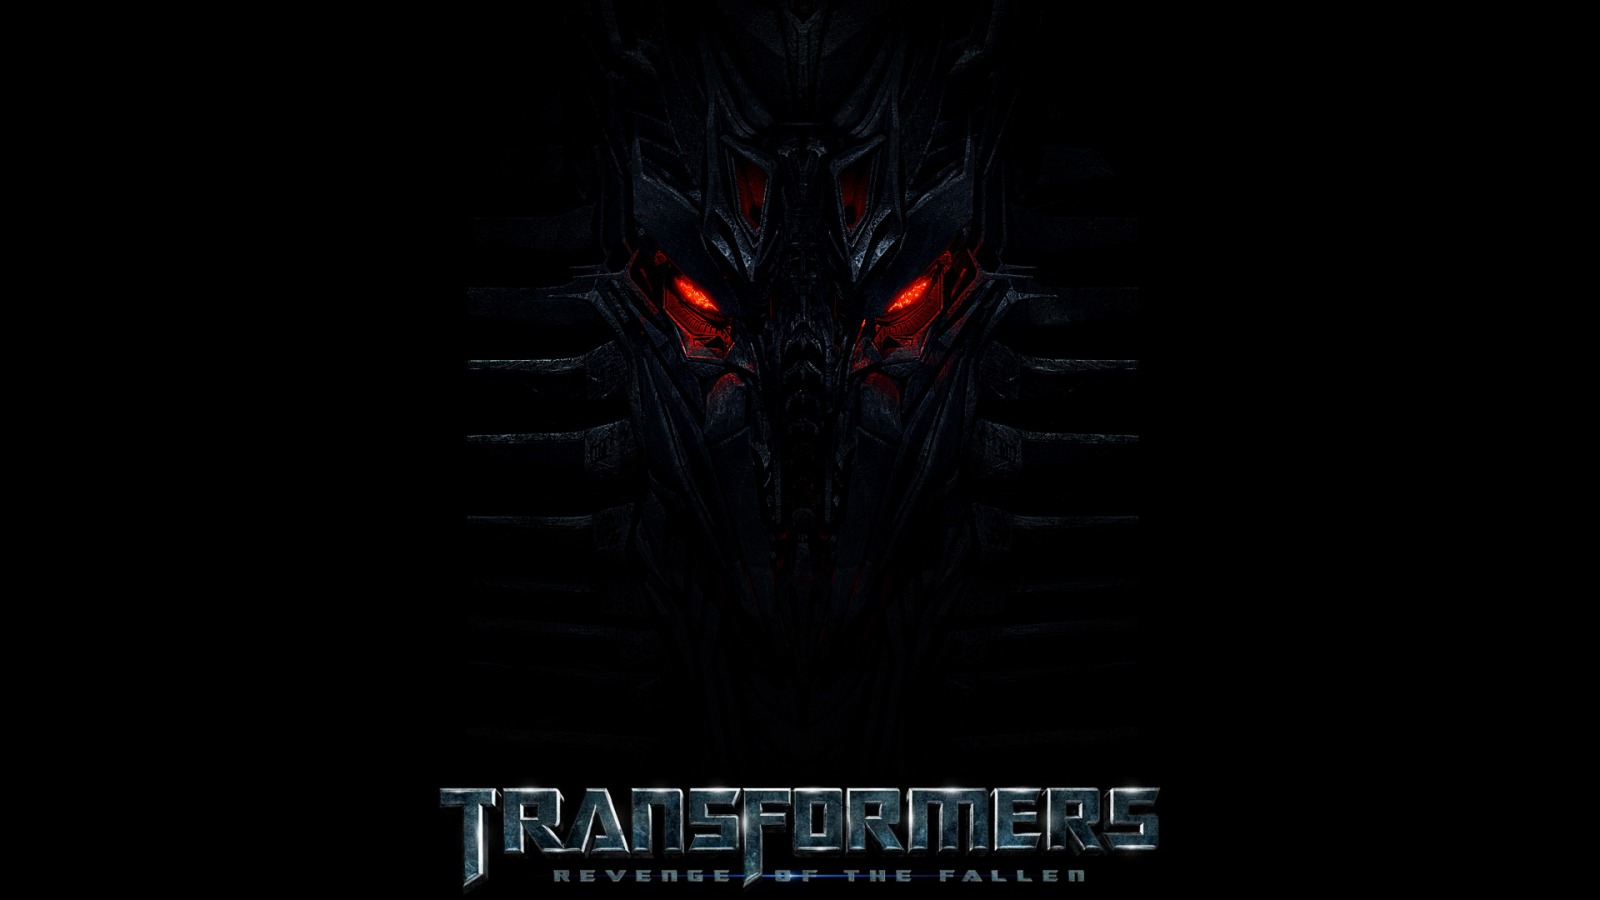 Transformers Revenge Of The Fallen Wallpaper Transformers 2 Movies